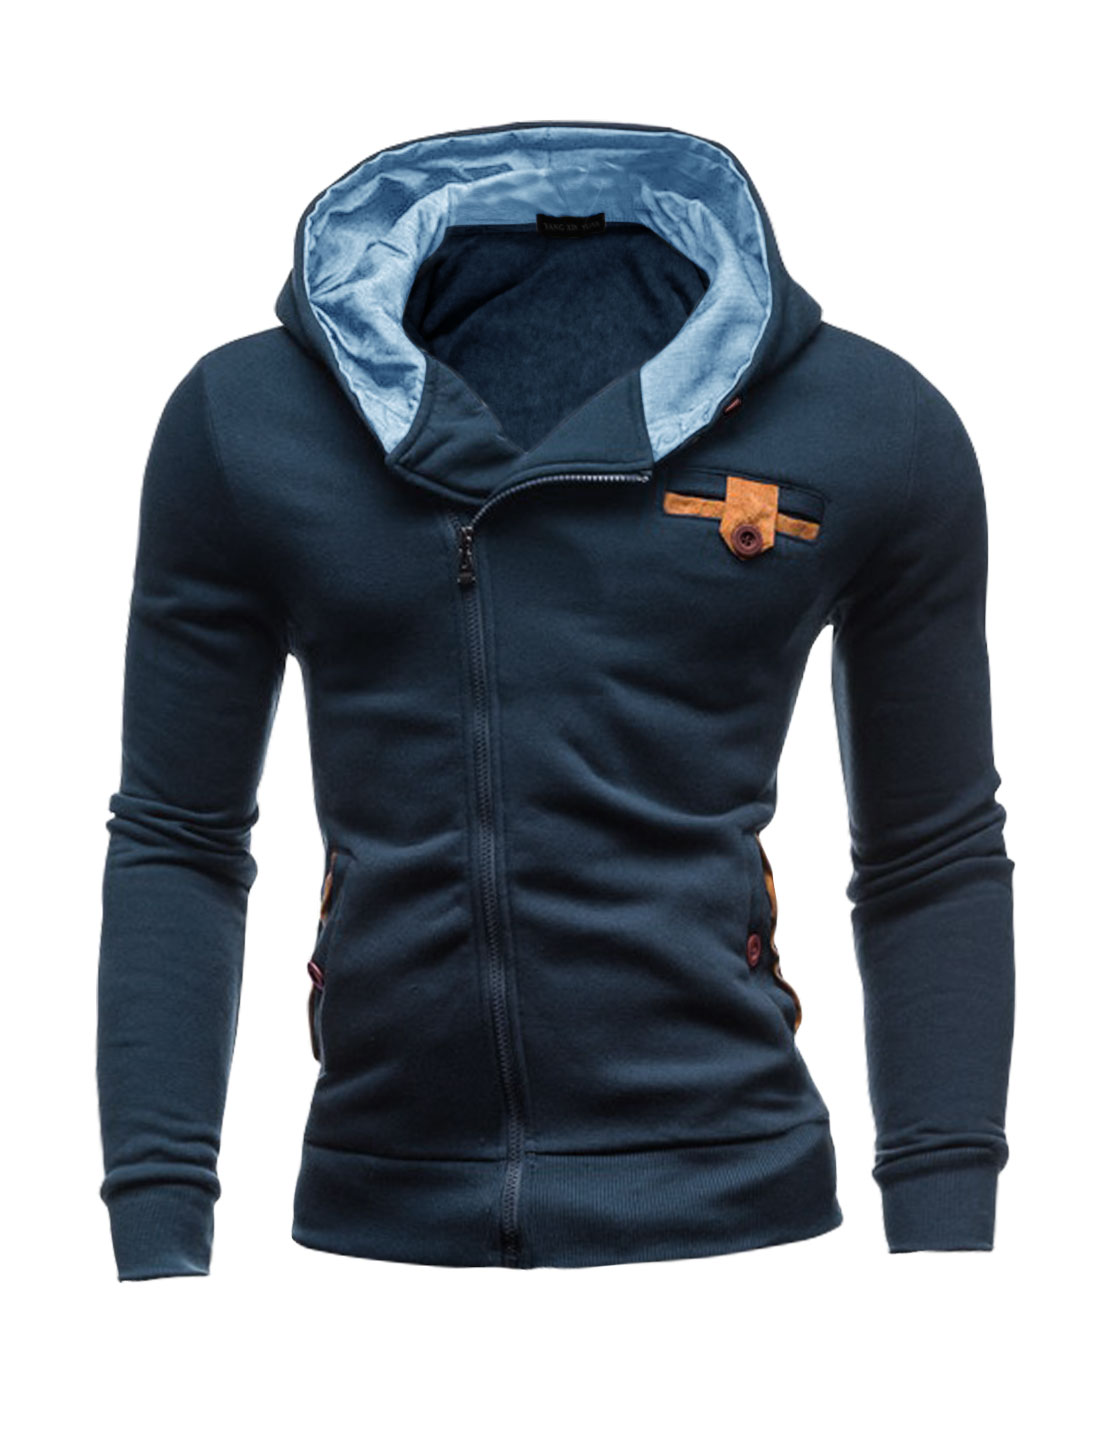 Men Full Zip Two Pockets Elbow Patch Hooded Jacket Blue M